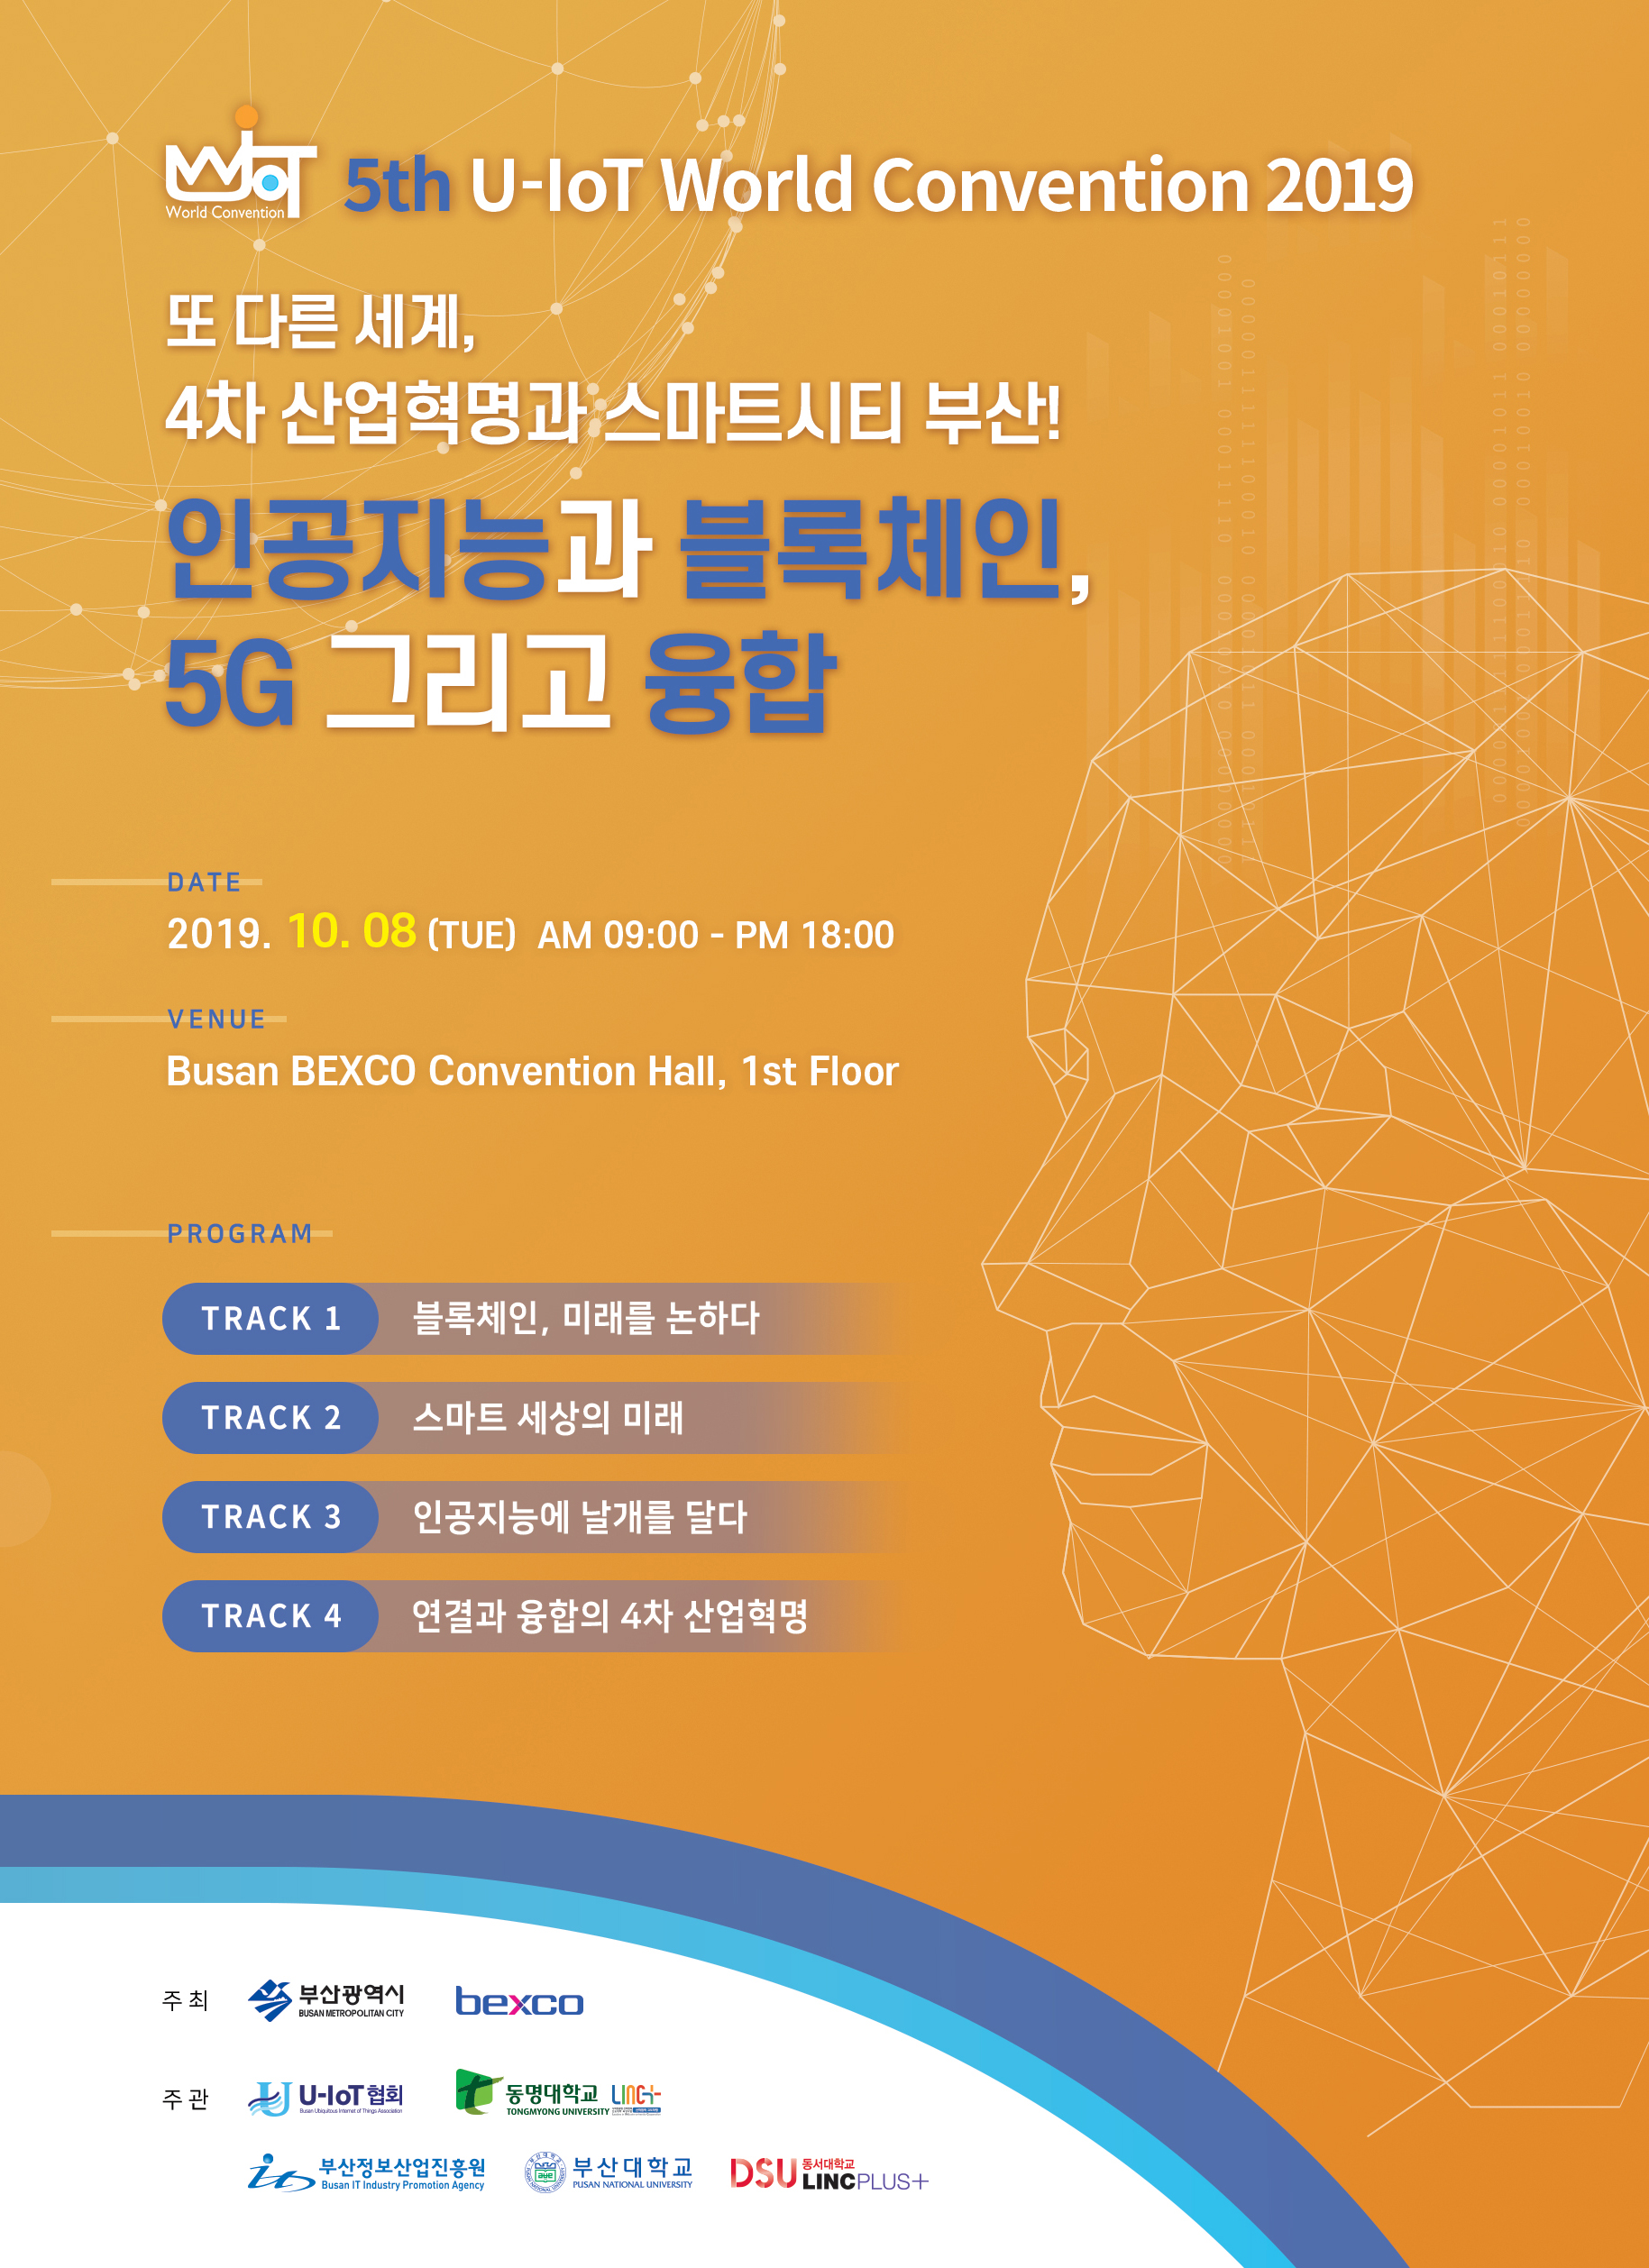 U-IoT World Convention 2019 행사